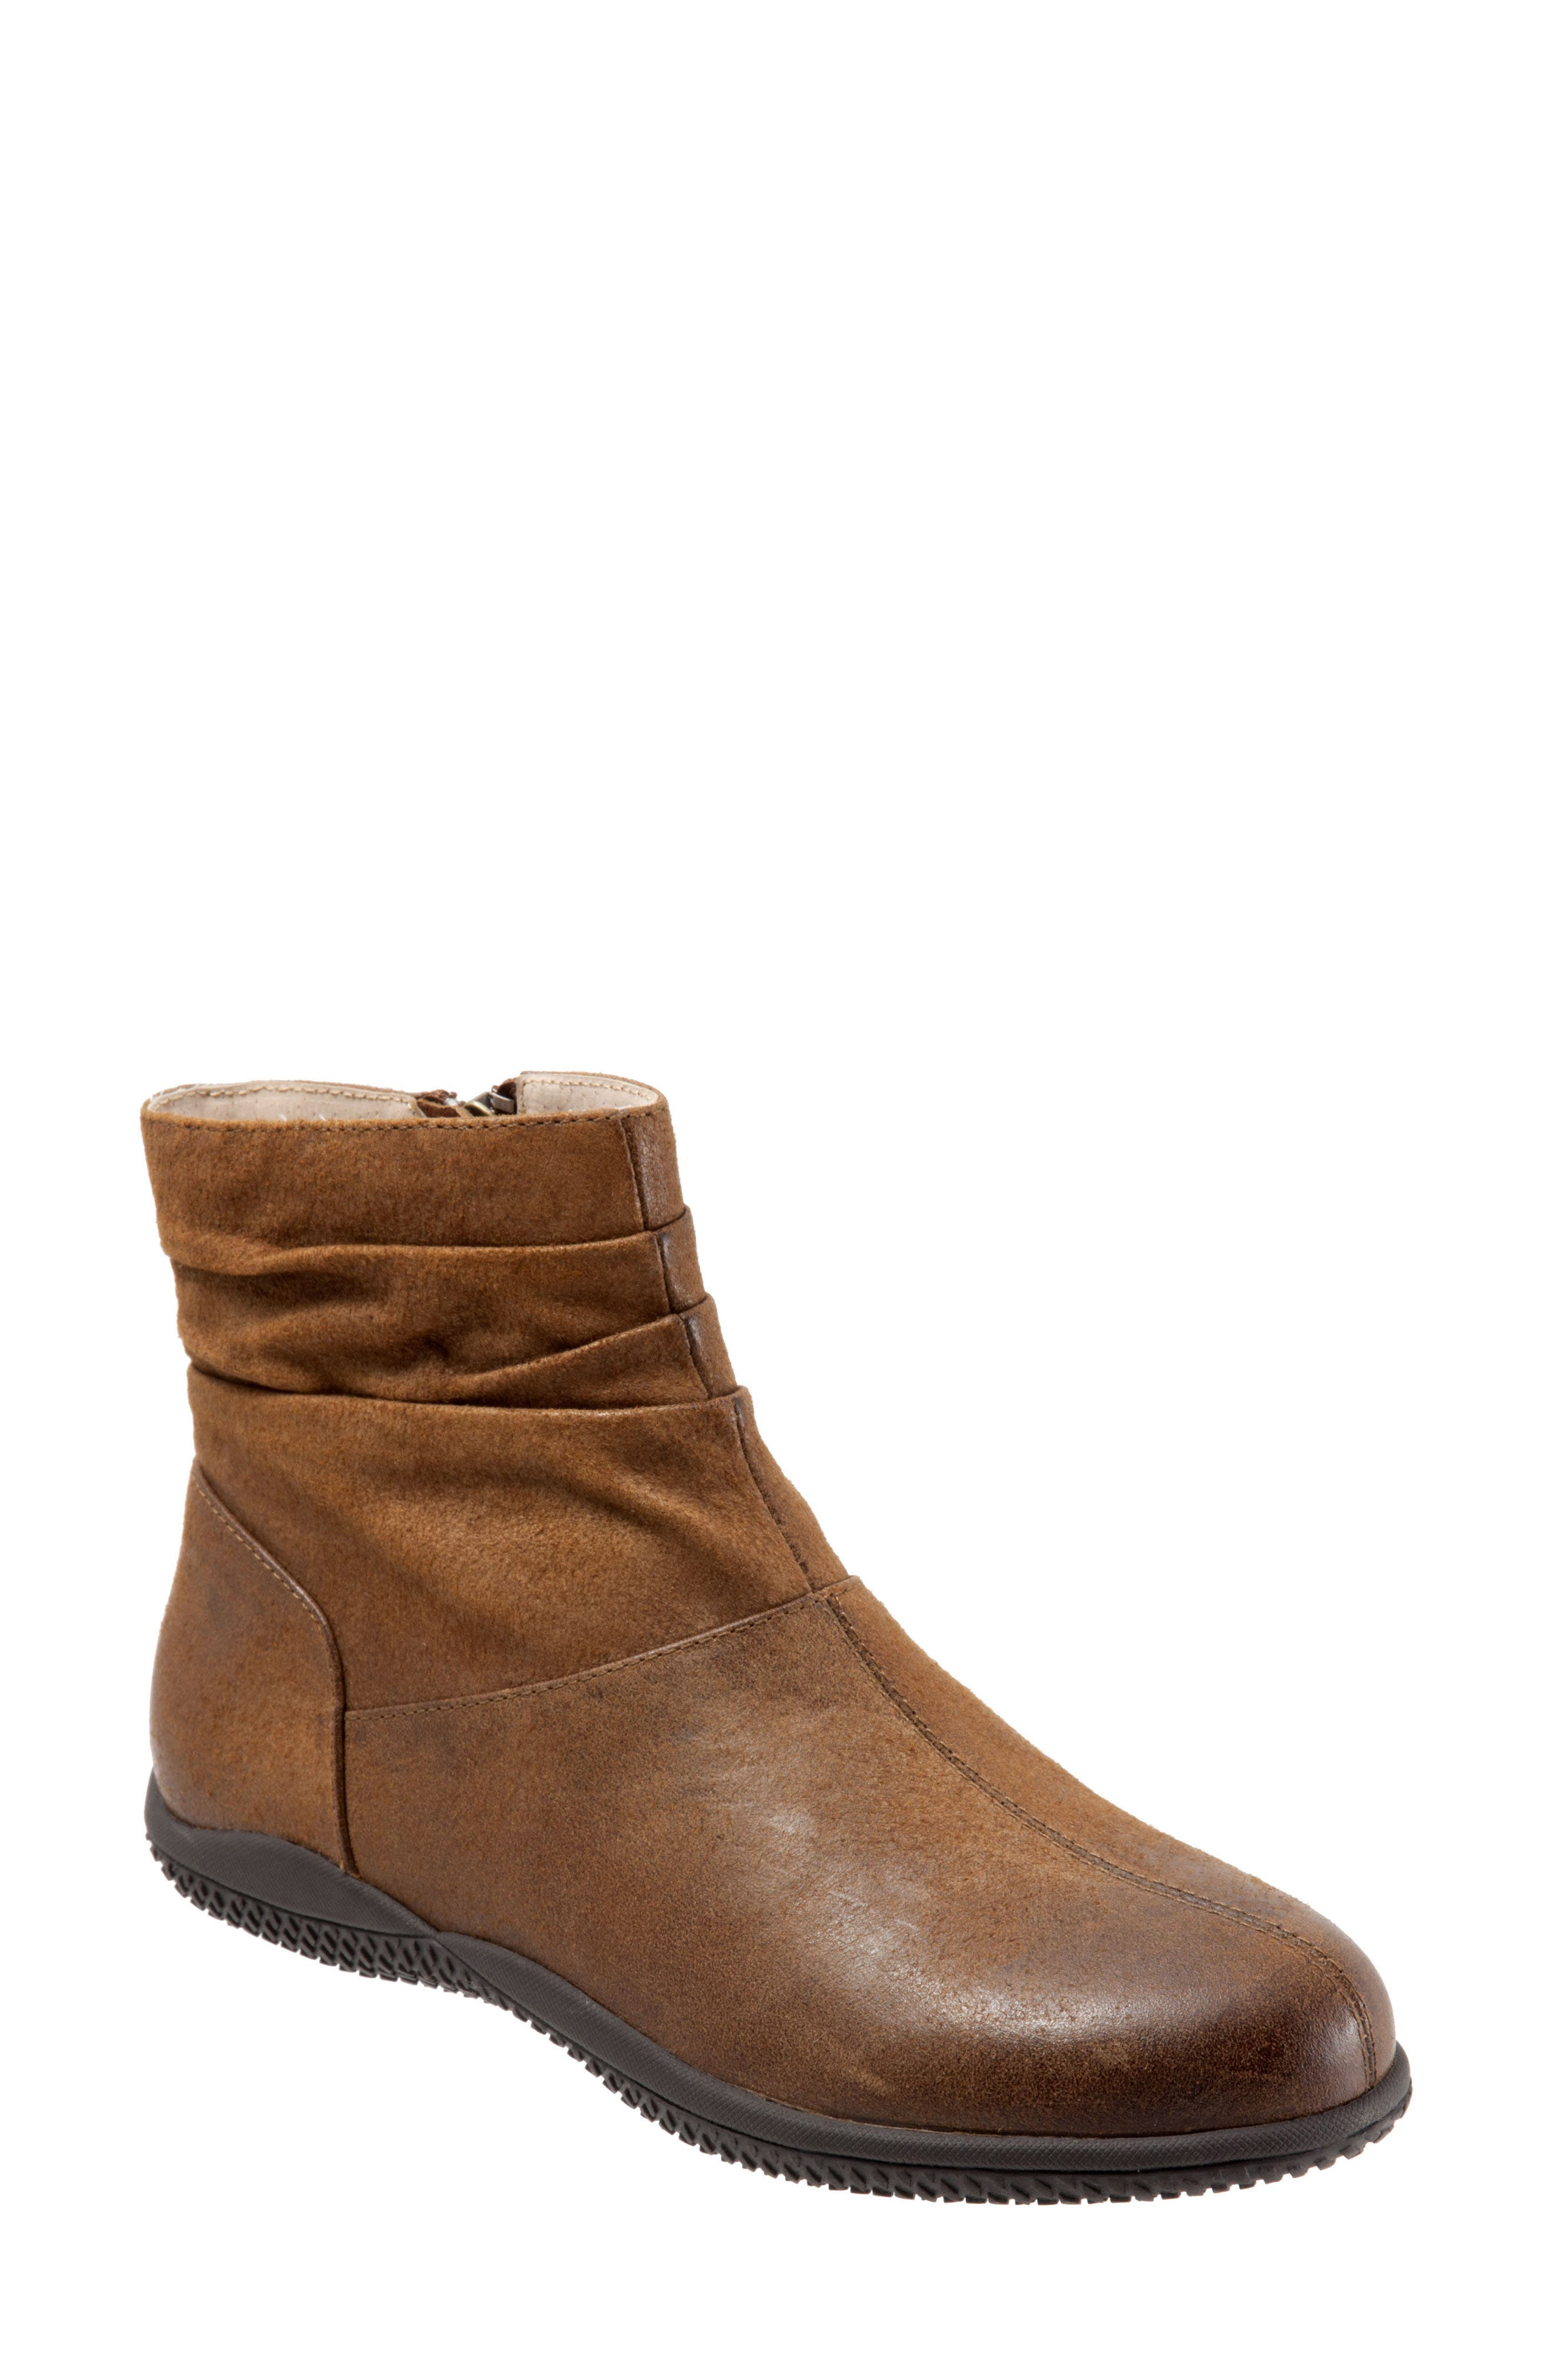 Main Image - SoftWalk® 'Hanover' Leather Boot (Women)